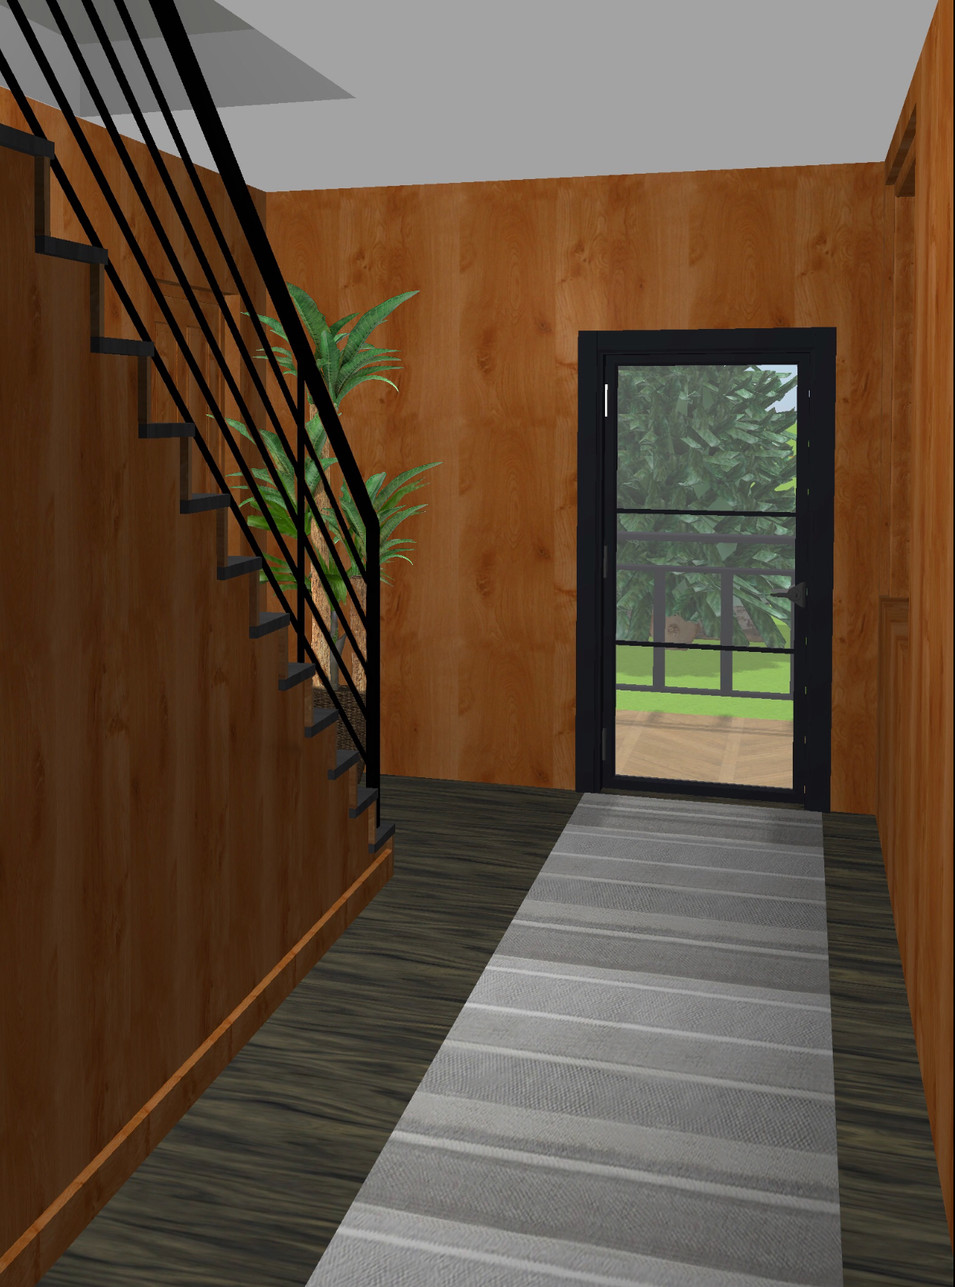 New glass door and contemporary metal railings.